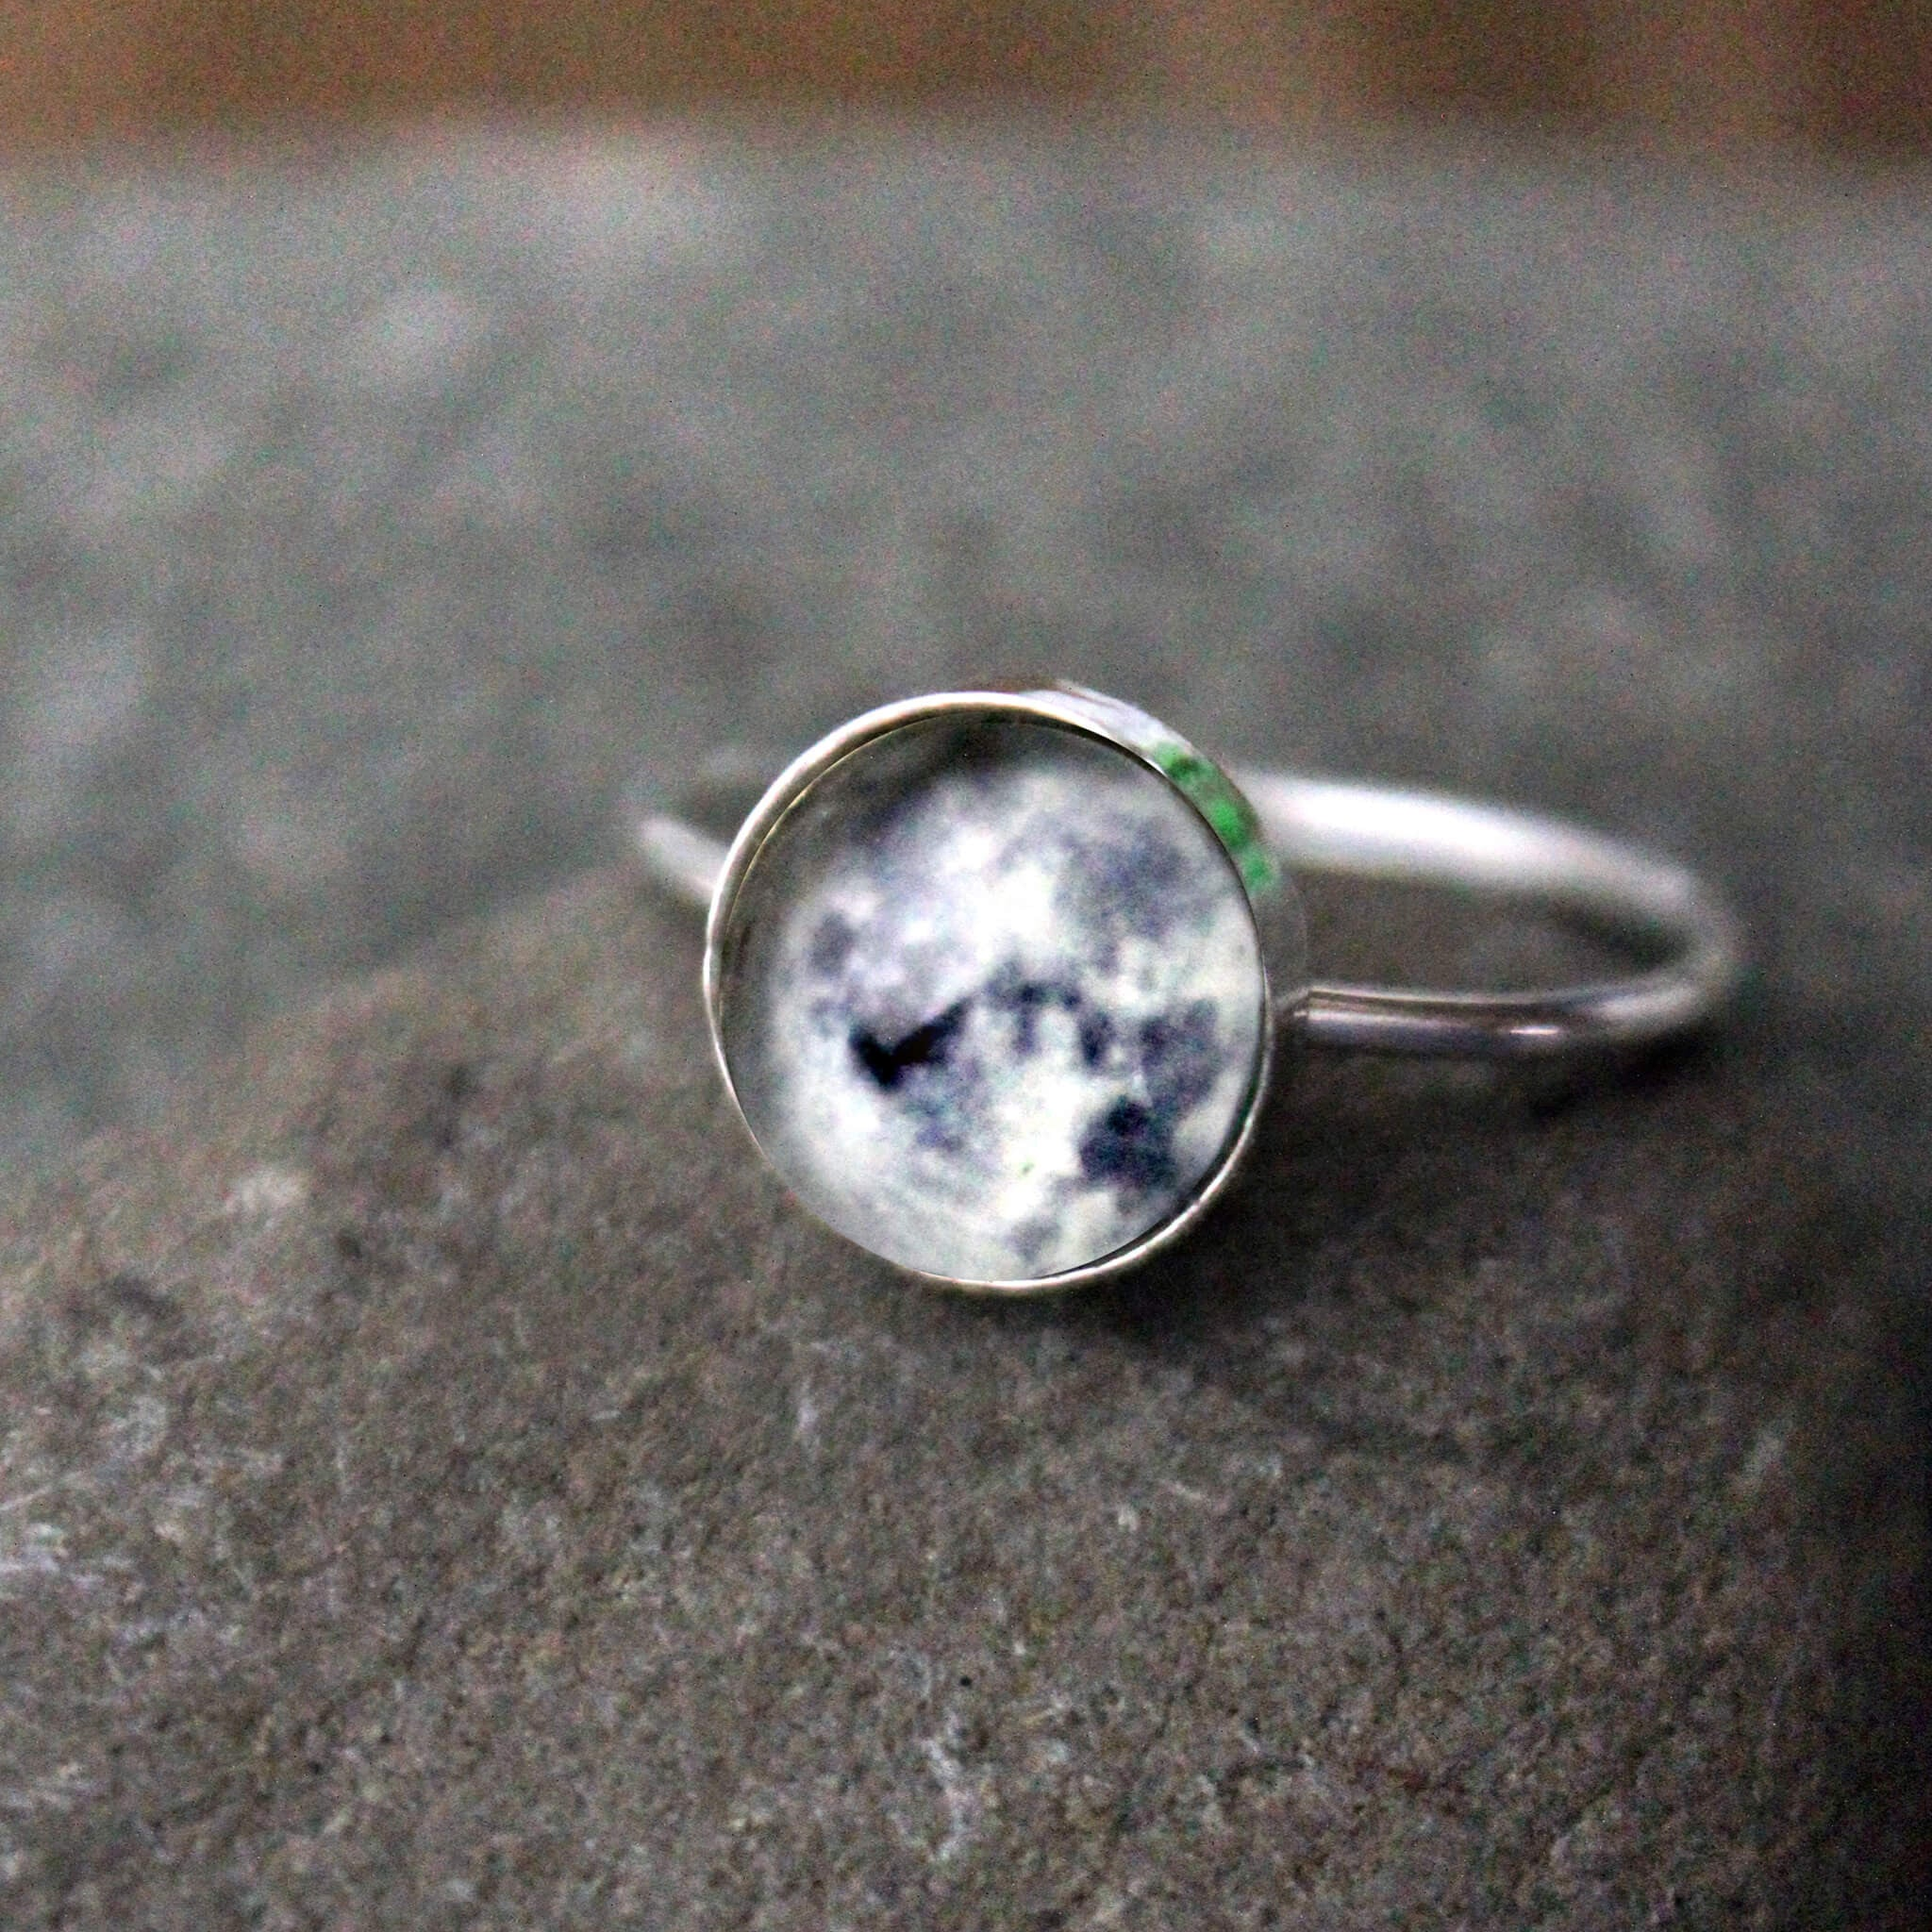 Custom Sterling Silver Space Ring, Made in Custom Sizes - Choose Your Galaxy Image, Outer Space nebula planet STEM Astronomy jewelry handmade by Yugen Tribe with moon